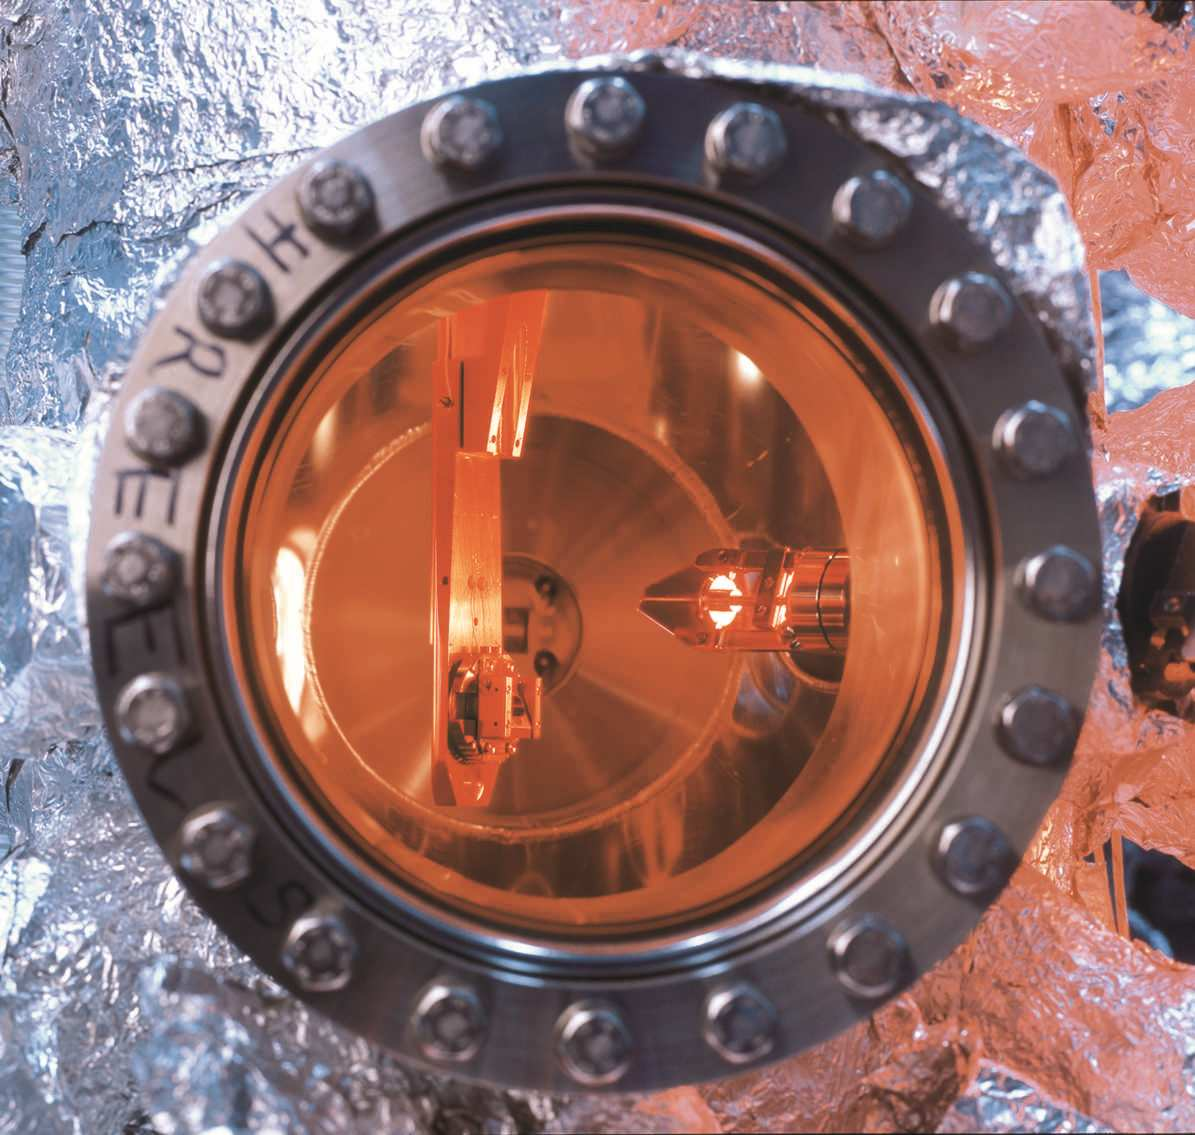 close look into a high vacuum chamber with complex device for smple movement and positioning